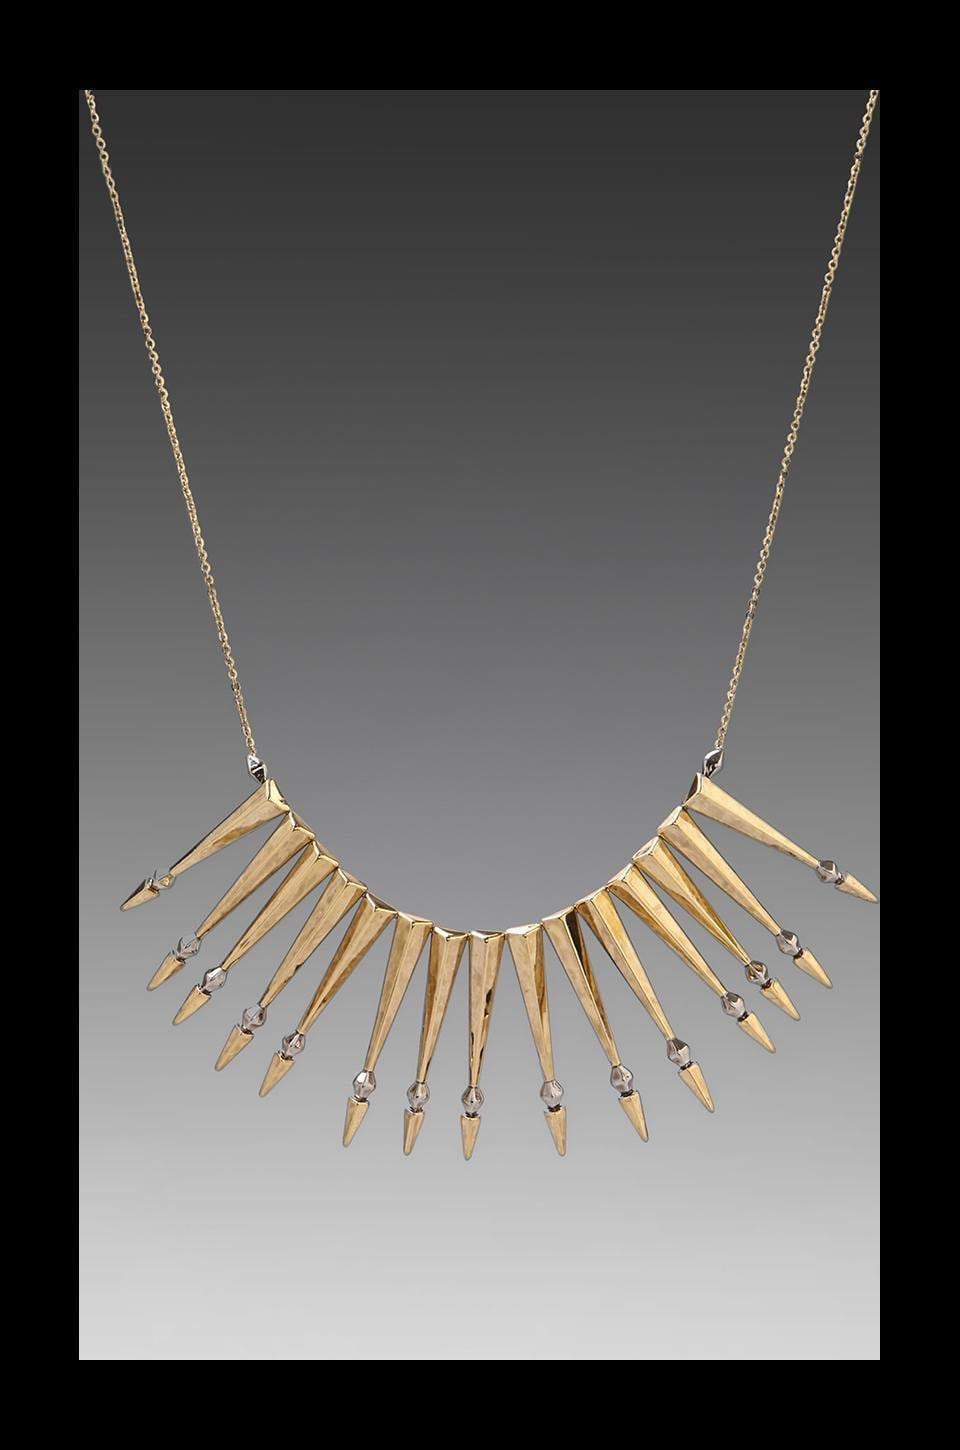 House of Harlow 1960 House of Harlow Nomadic Warrior Arrow Necklace in Gold